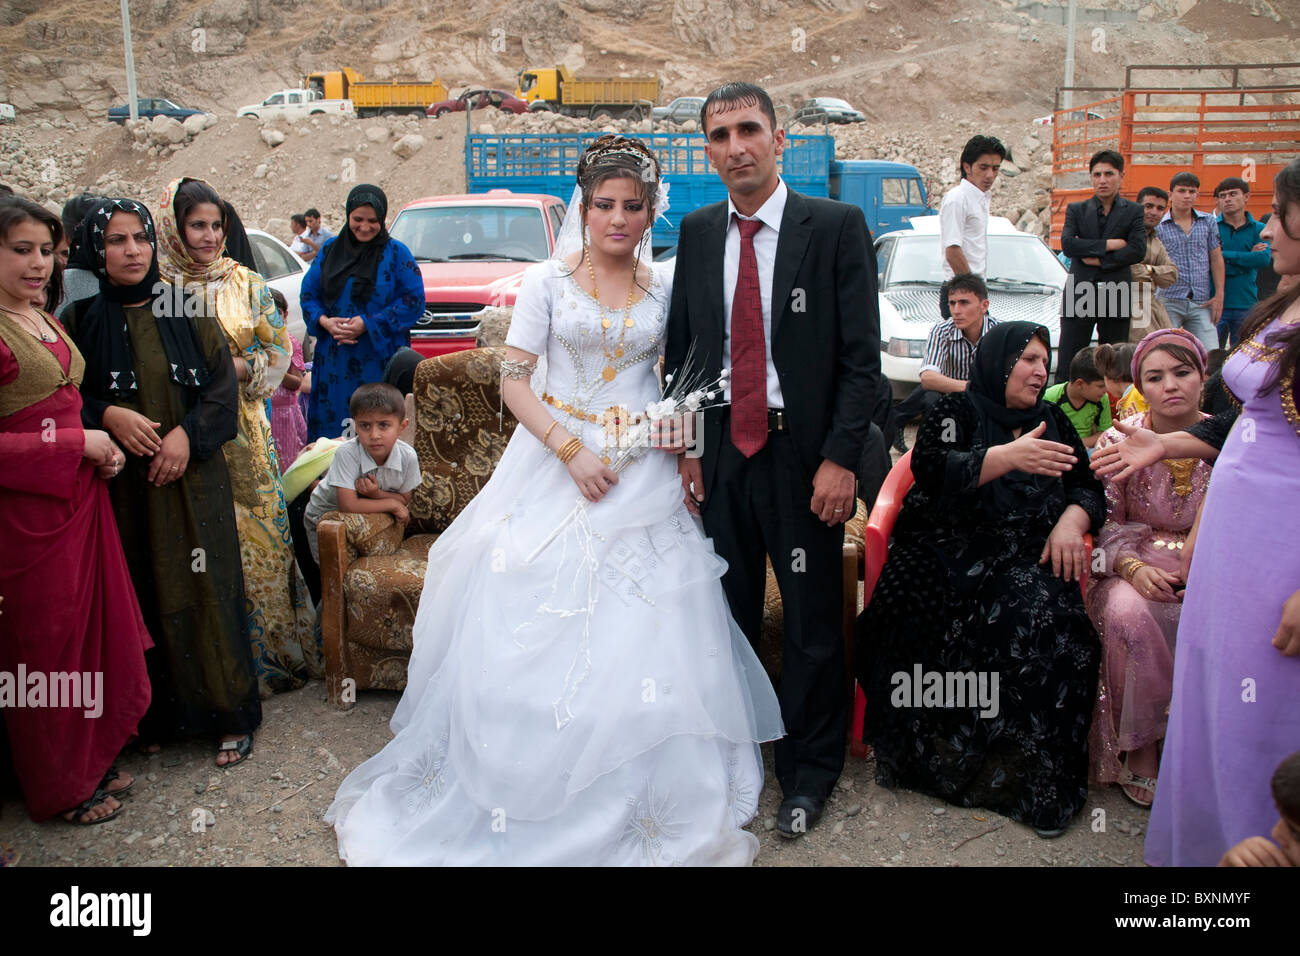 A roadside Kurdish wedding in the mountains of Northern Iraq near the town of Rowanduz and the Iranian border. - Stock Image